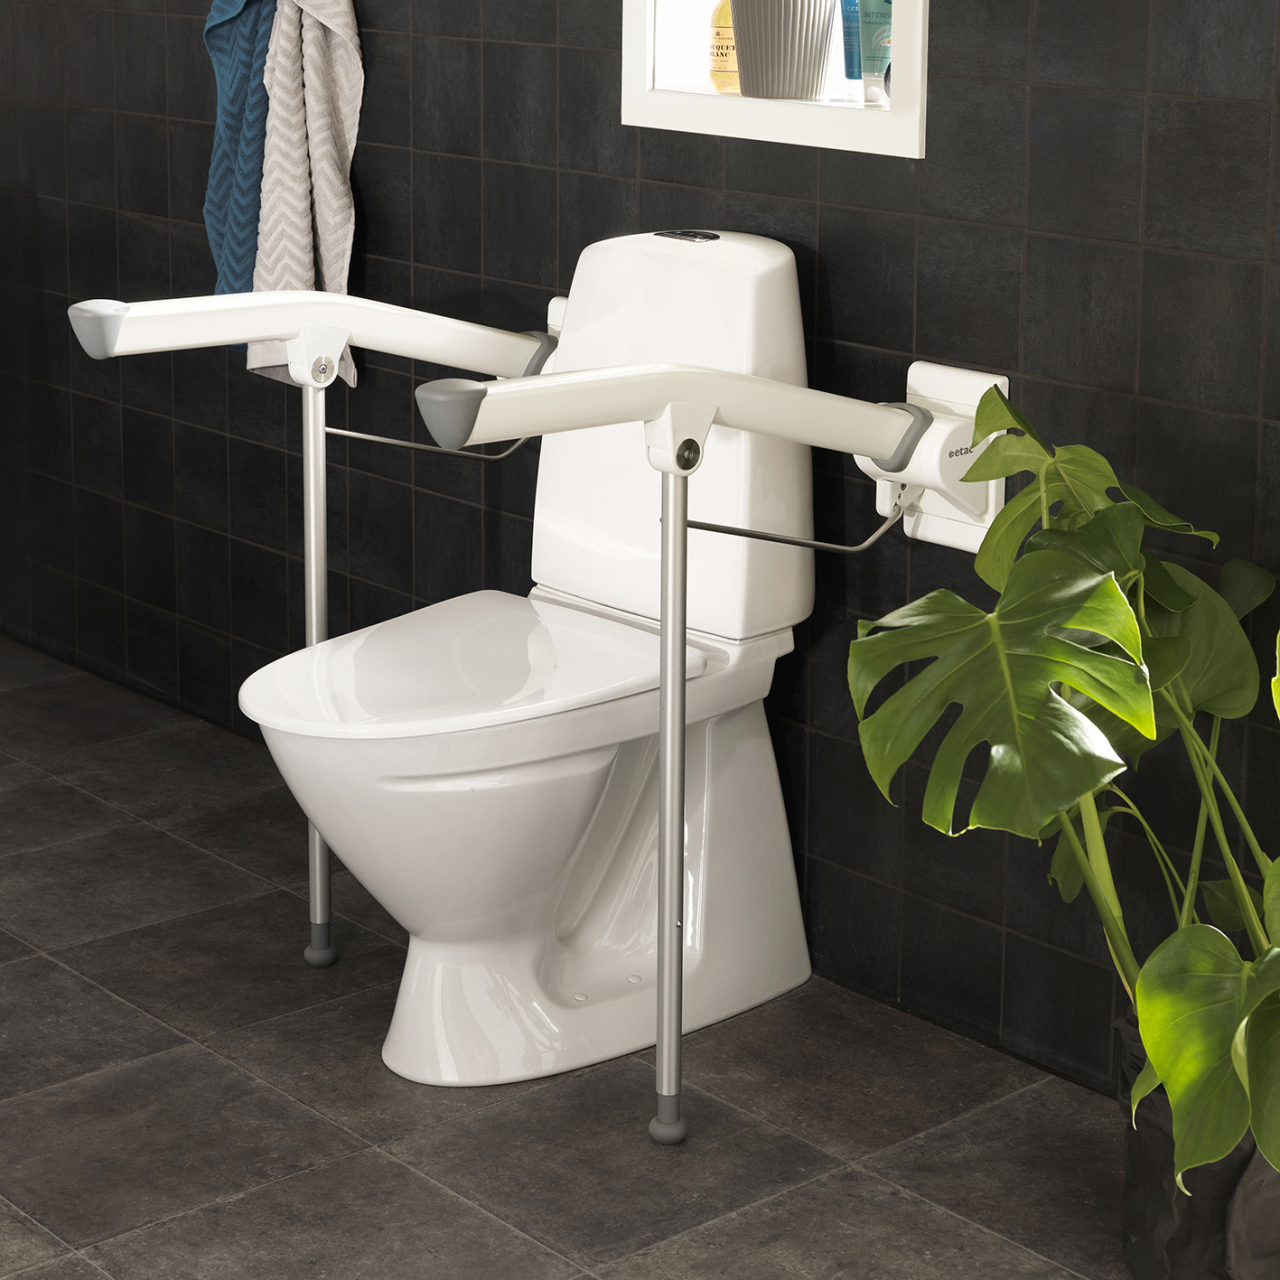 Toilet Arm Support